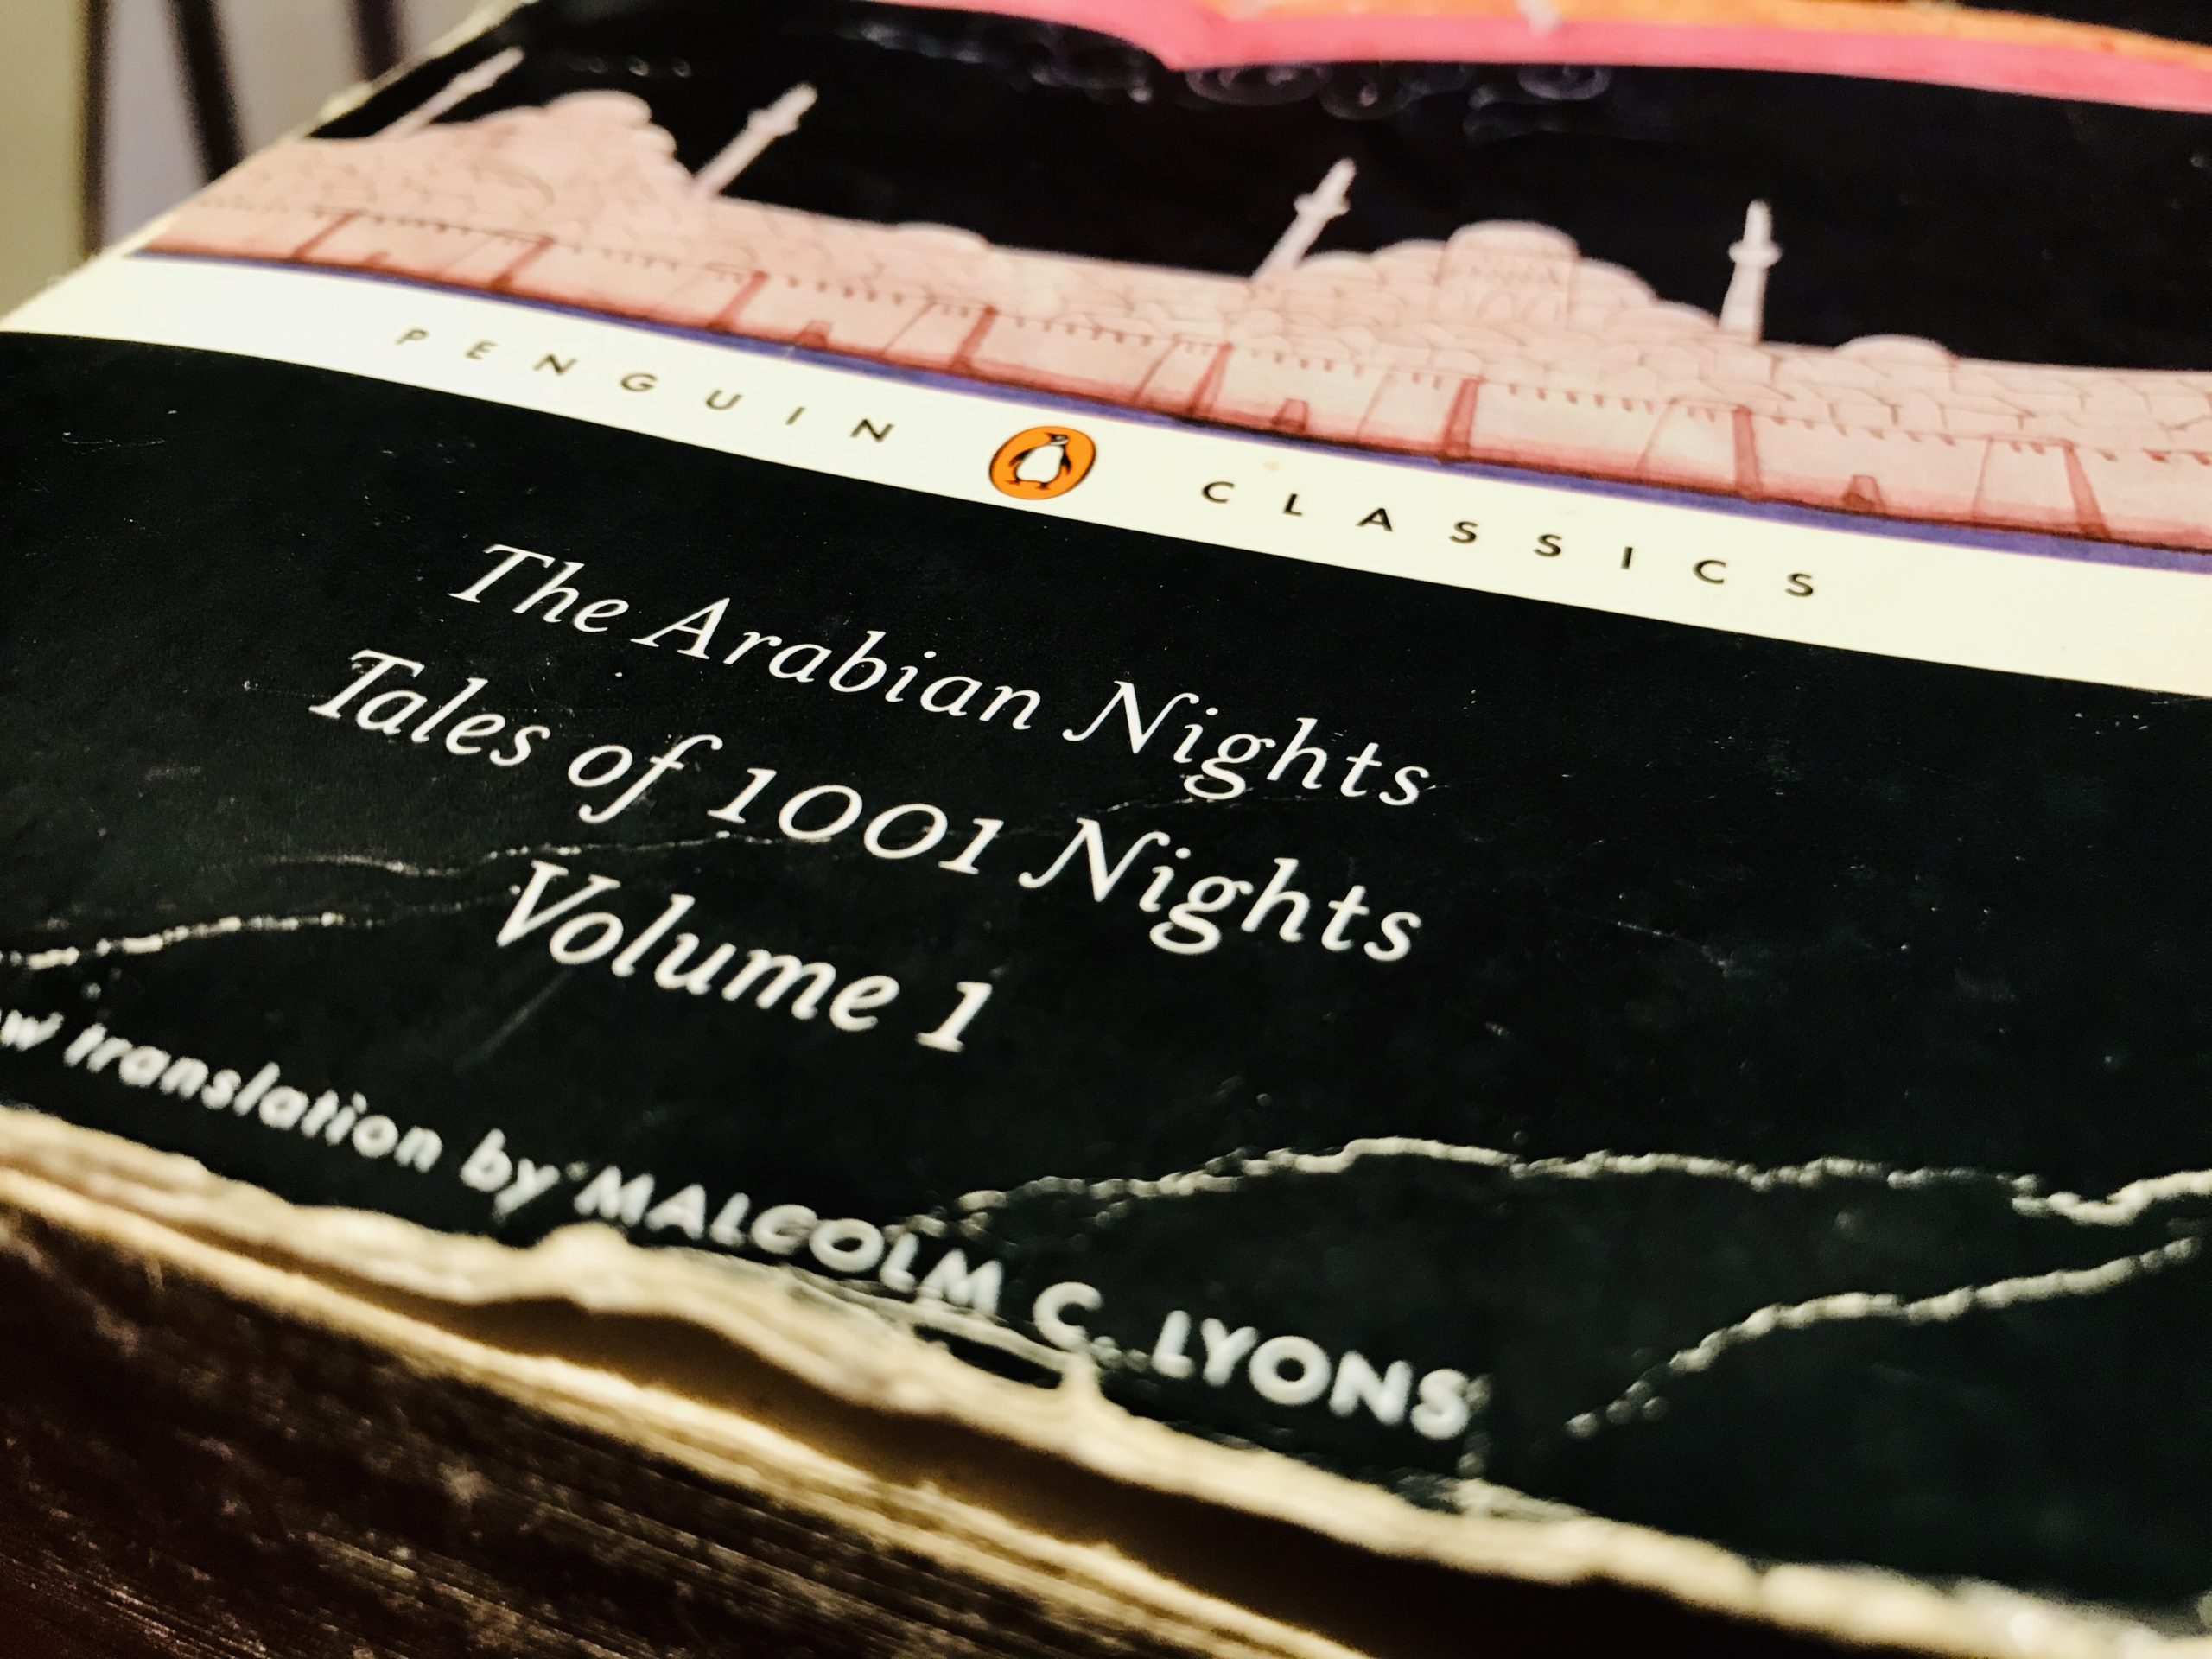 The Arabian Nights, translated by Malcolm Lyons (Volume 1)